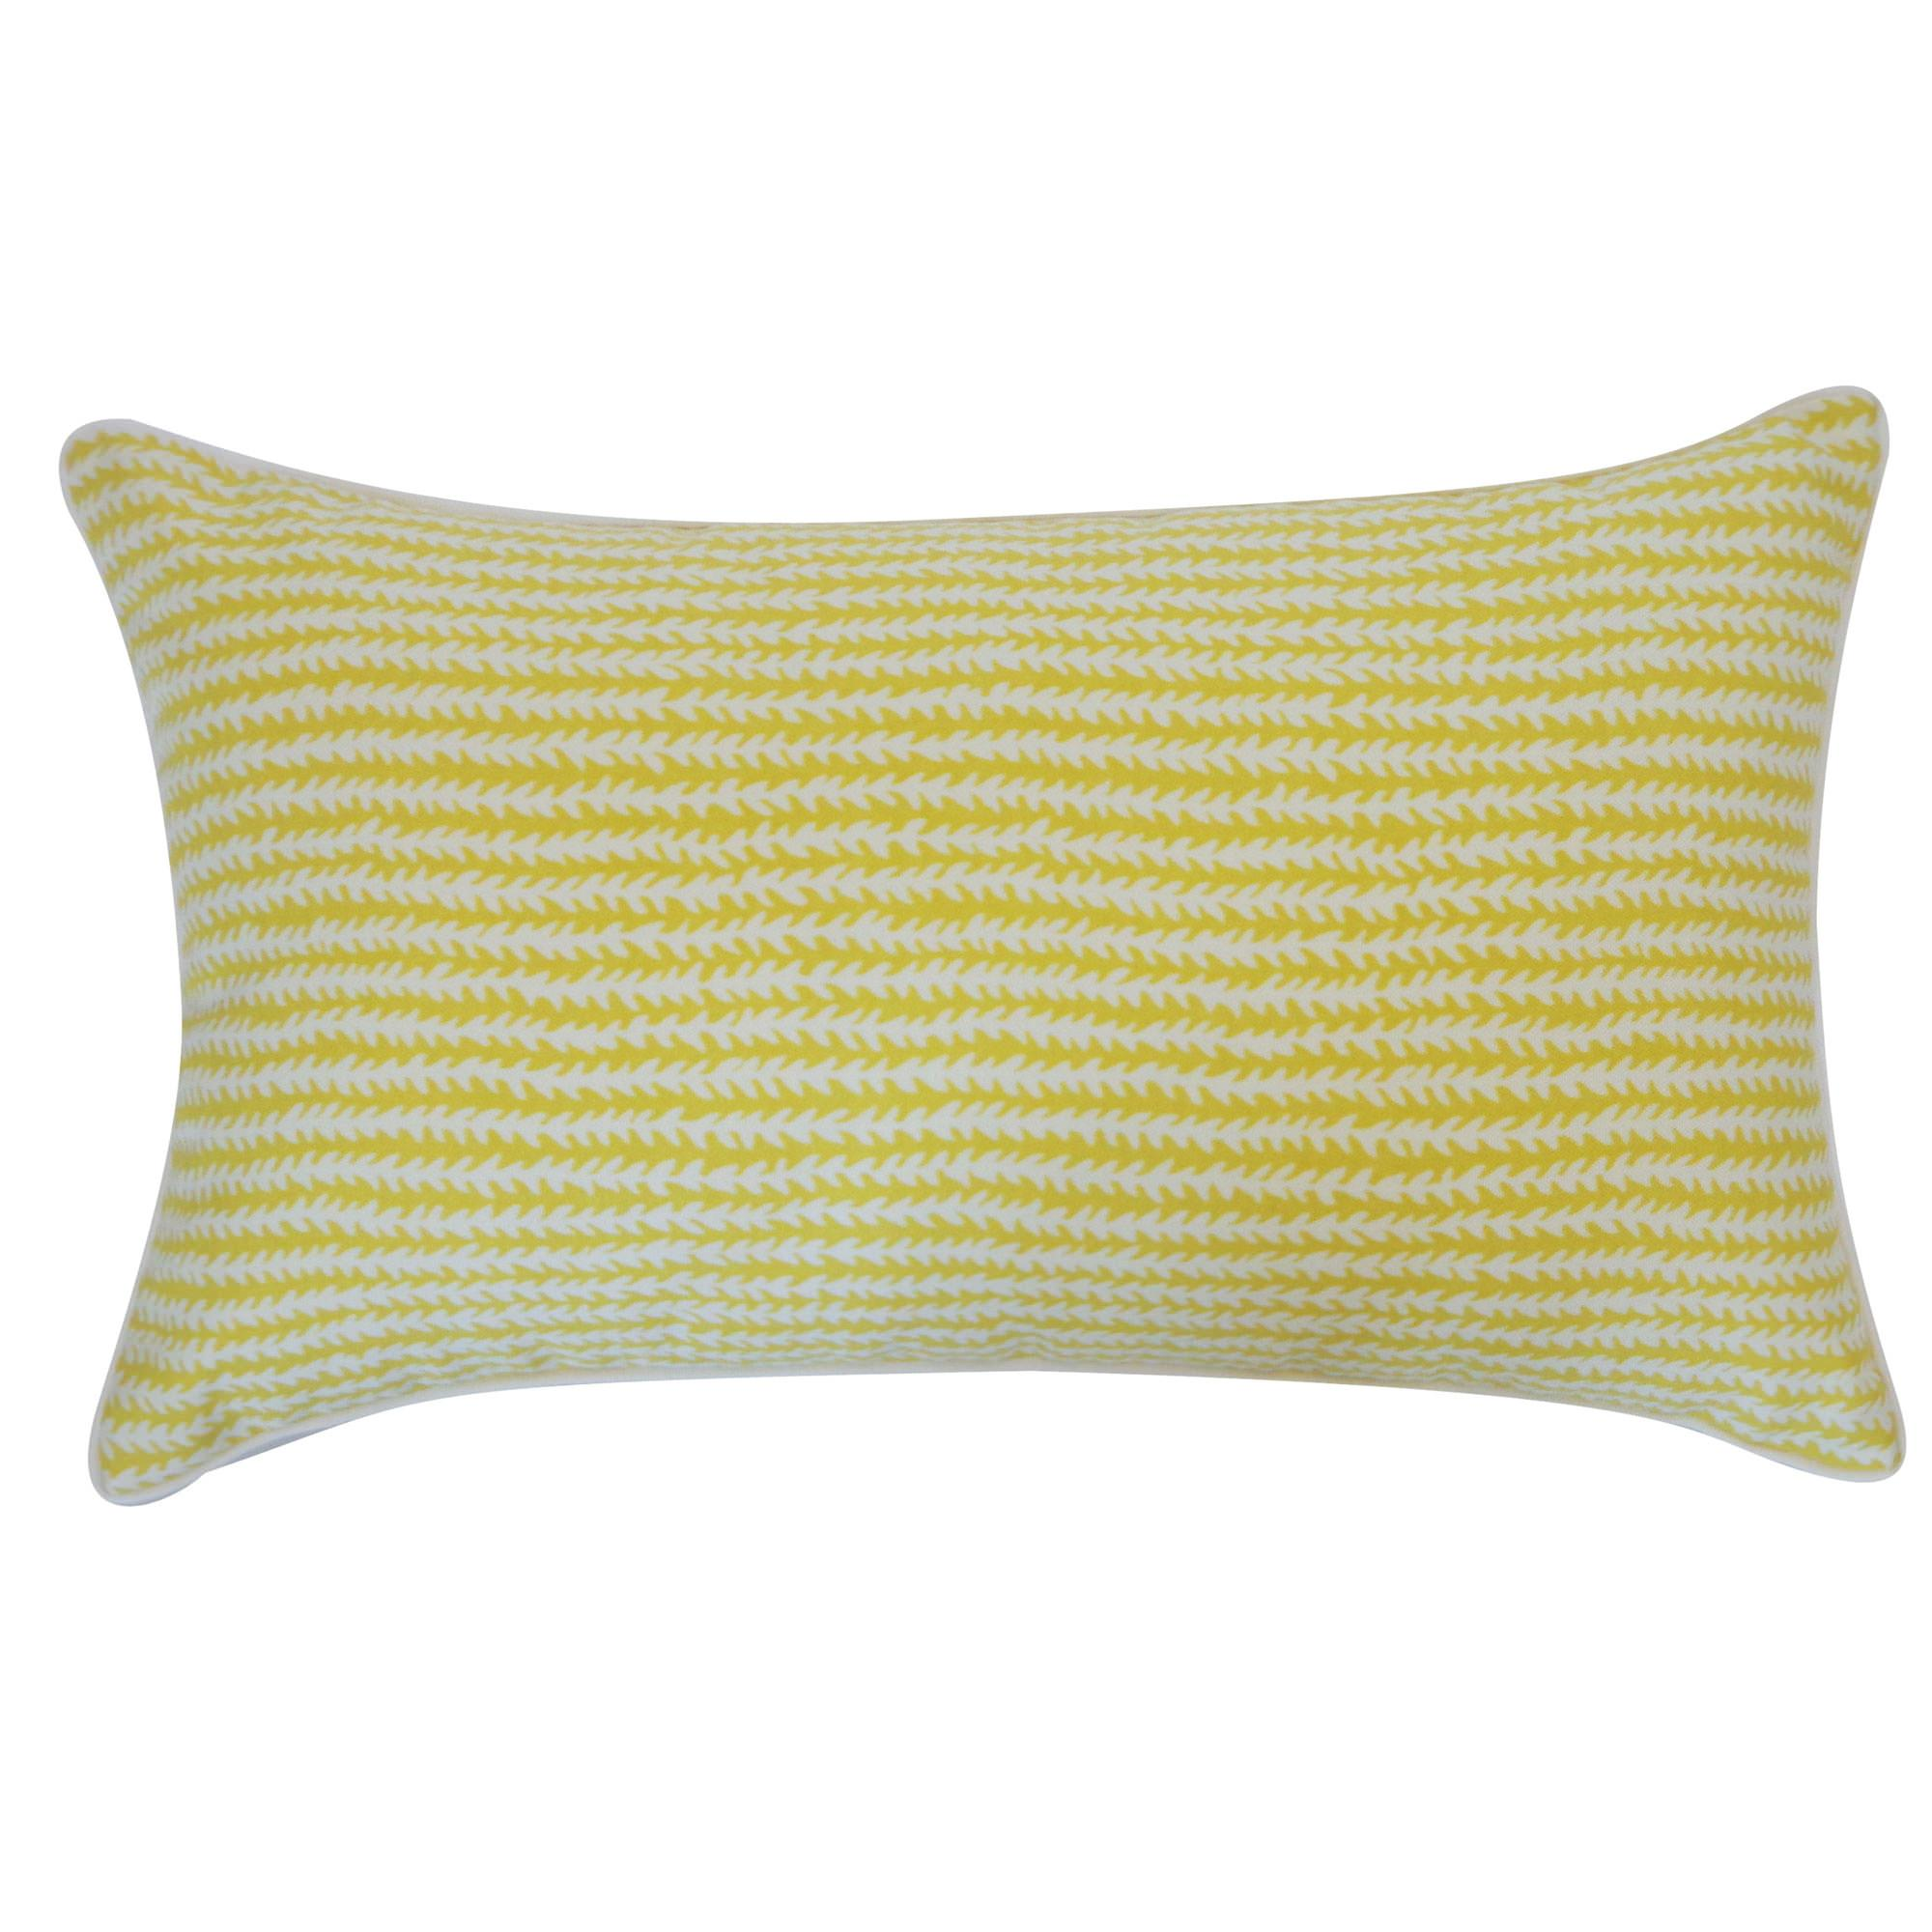 Throw Pillows 20 X 12 Yellow : 12in x 20in Yellow Stitches Outdoor Throw Pillow DFOHome